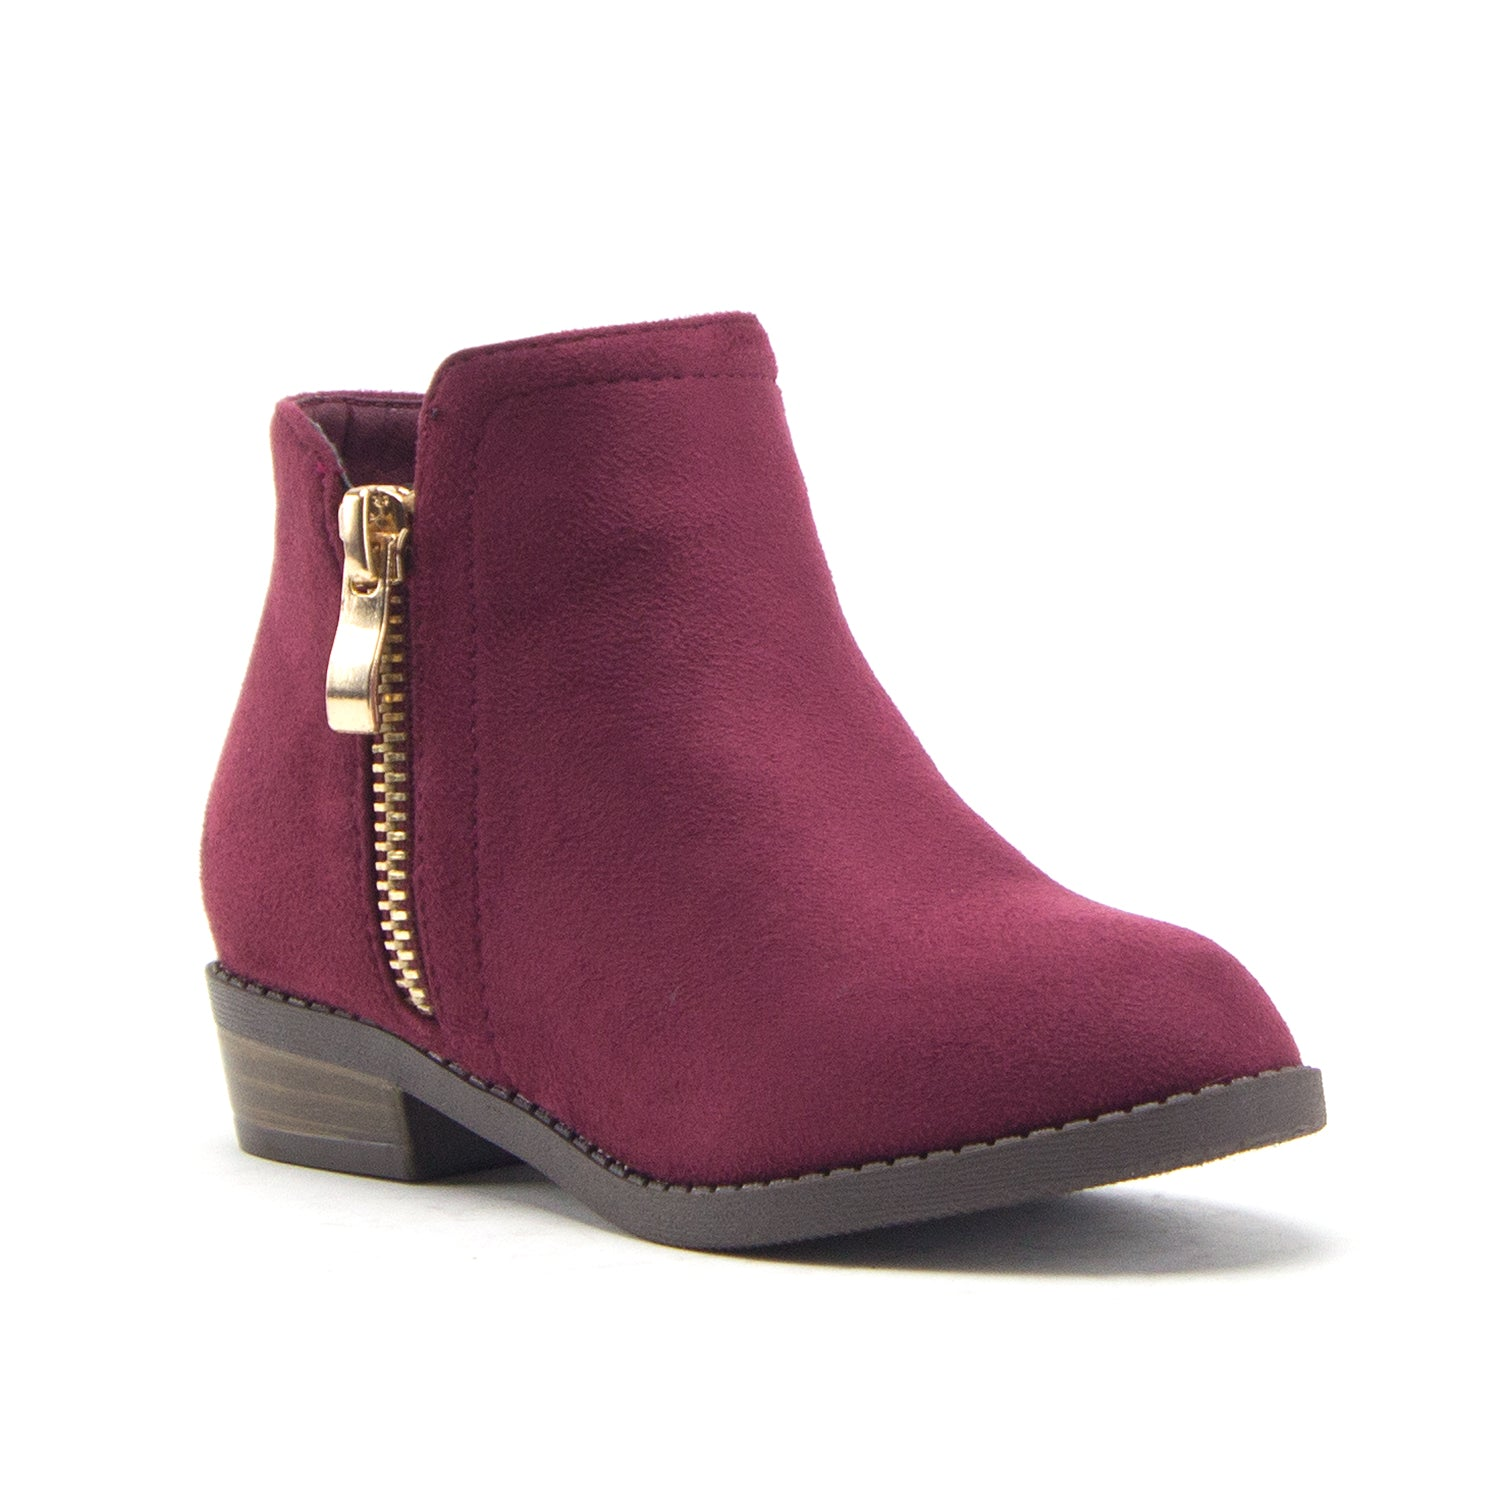 Little Kids Girls Ankle High Booties